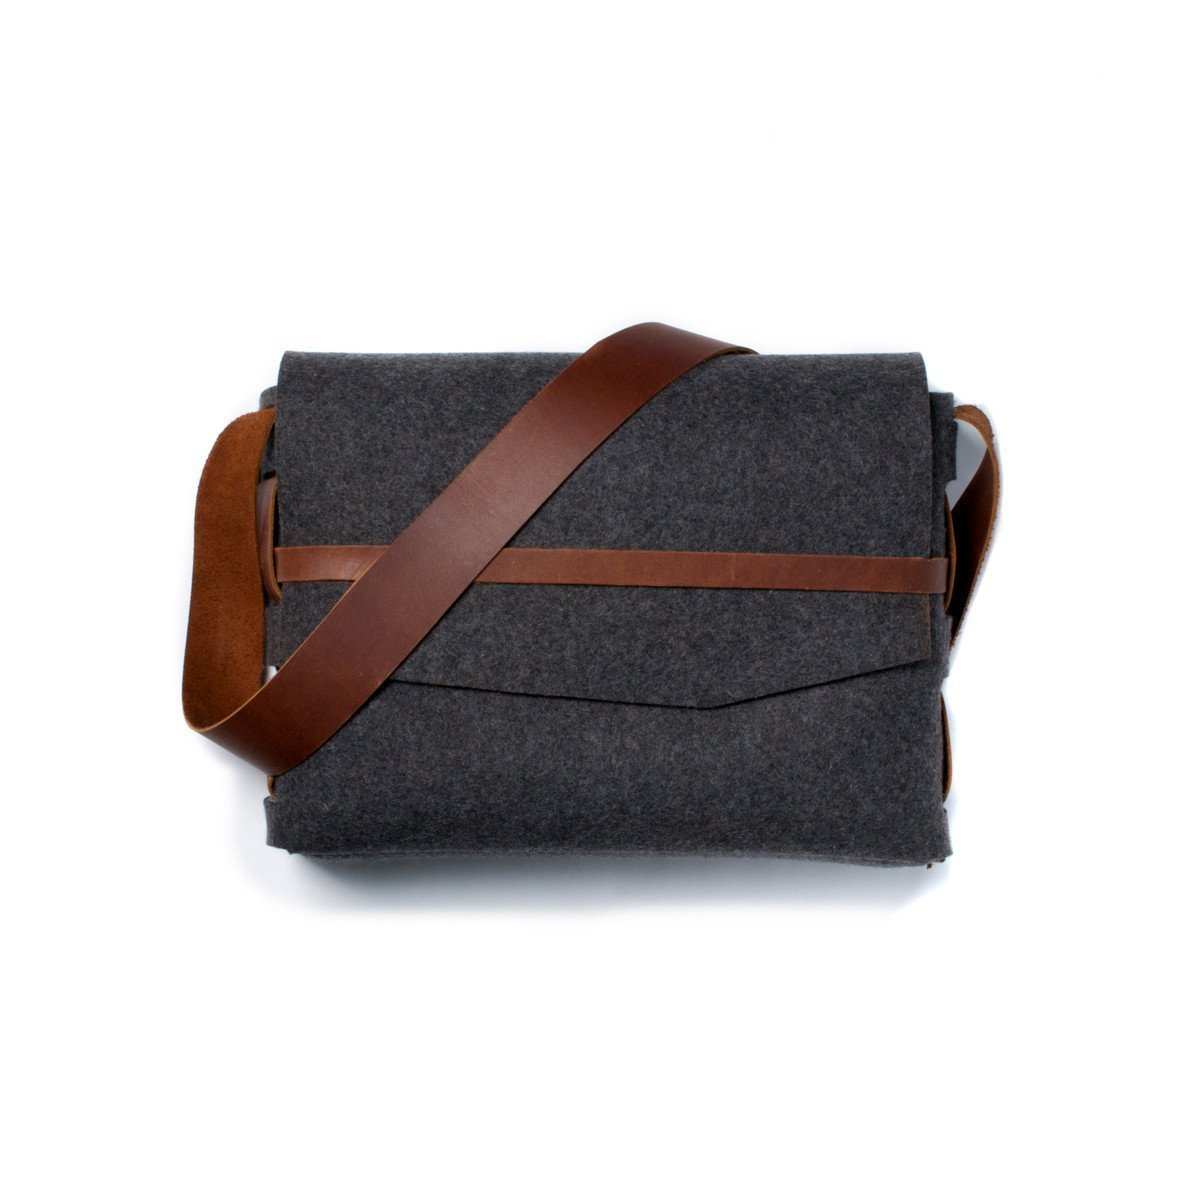 Wool Survivor Leather Satchel